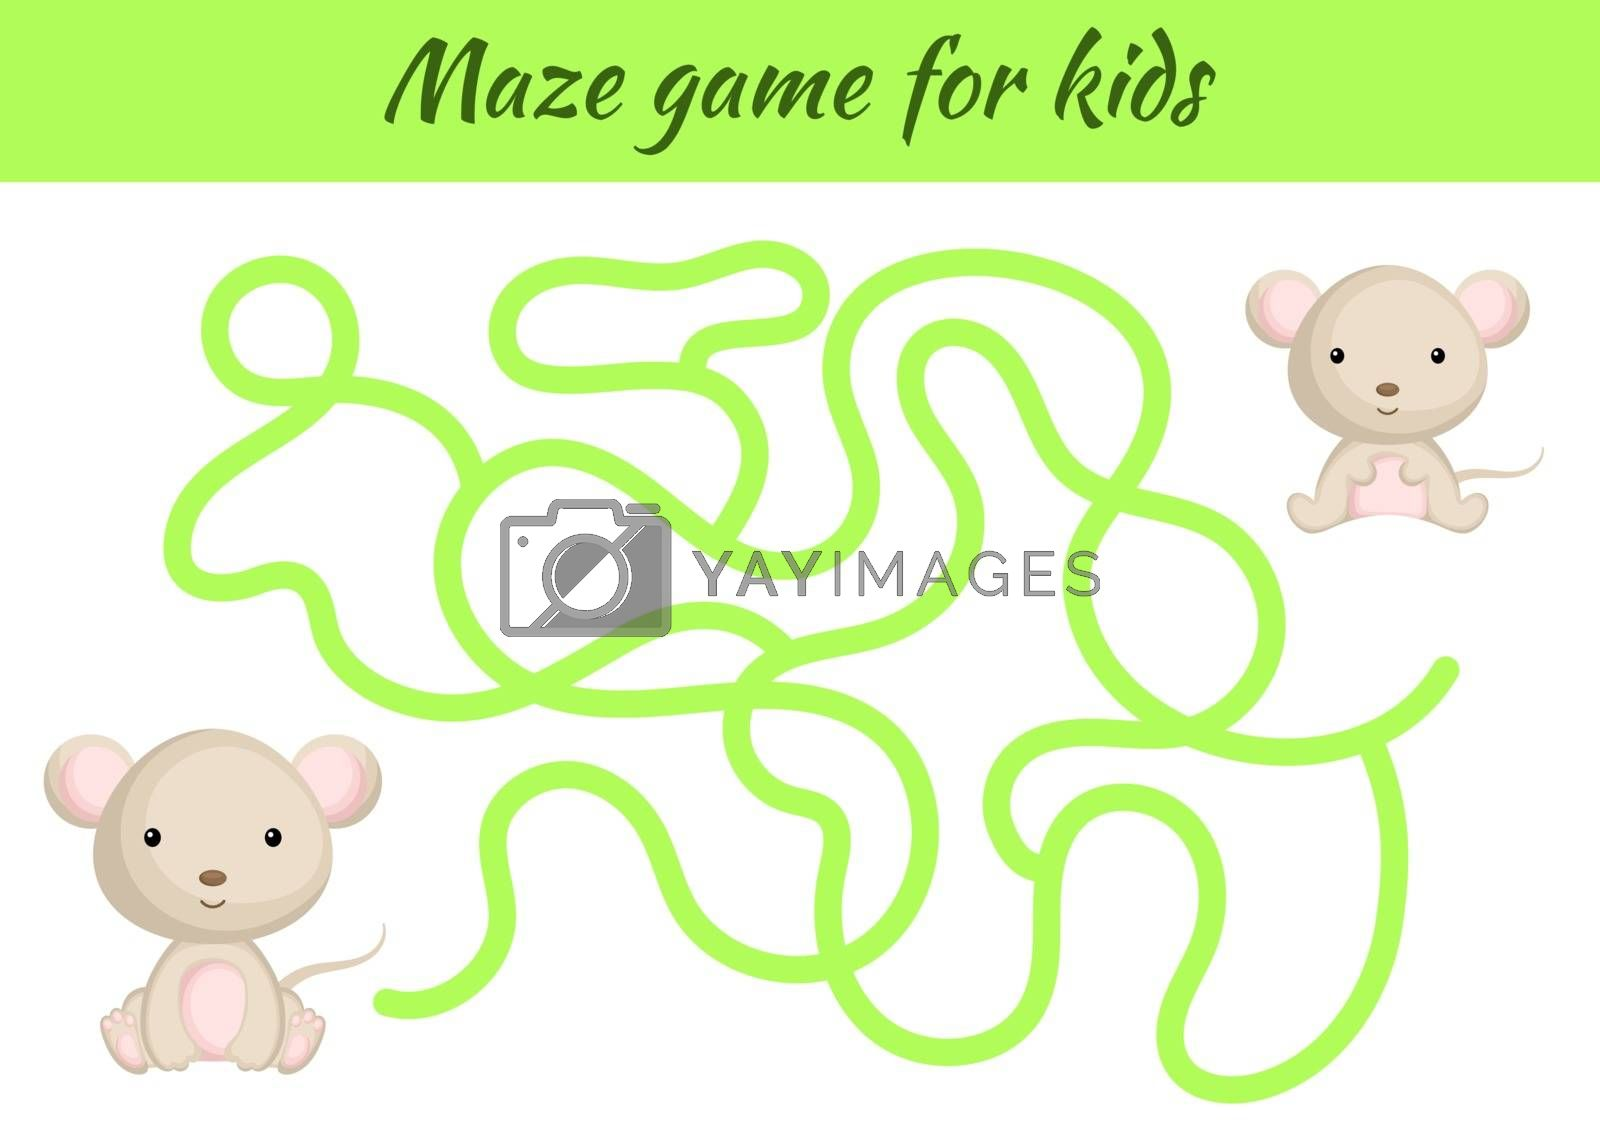 Funny maze or labyrinth game for kids. Help mother find path to baby. Education developing worksheet. Activity page. Cartoon mouse characters. Riddle for preschool. Color vector stock illustration.